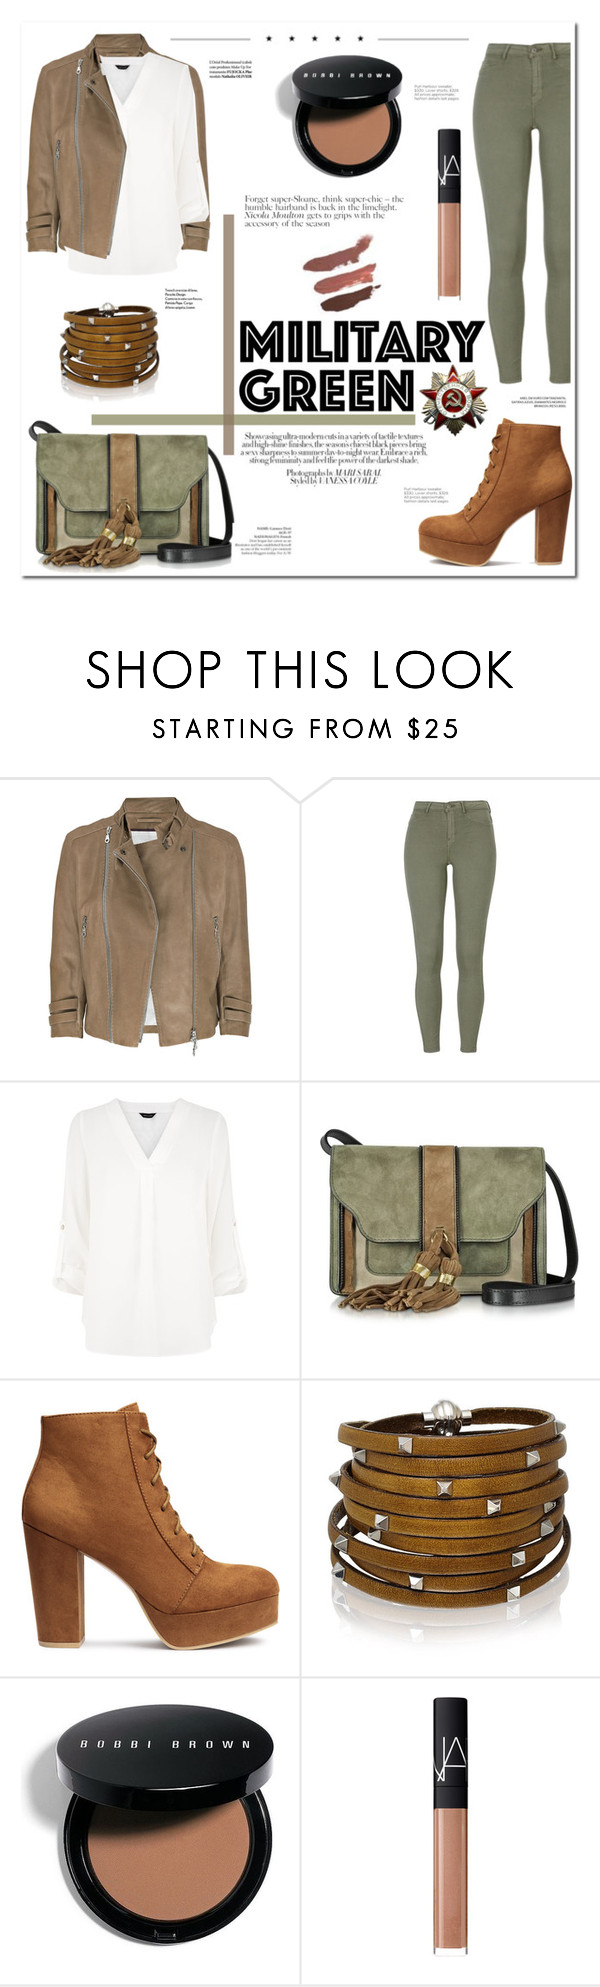 """""""▹ M G ✩"""" by f-ashioninside ❤ liked on Polyvore featuring McQ by Alexander McQueen, L'Autre Chose, Avenue, Sif Jakobs Jewellery, Bobbi Brown Cosmetics, NARS Cosmetics, military, Gogreen and militarygreen"""